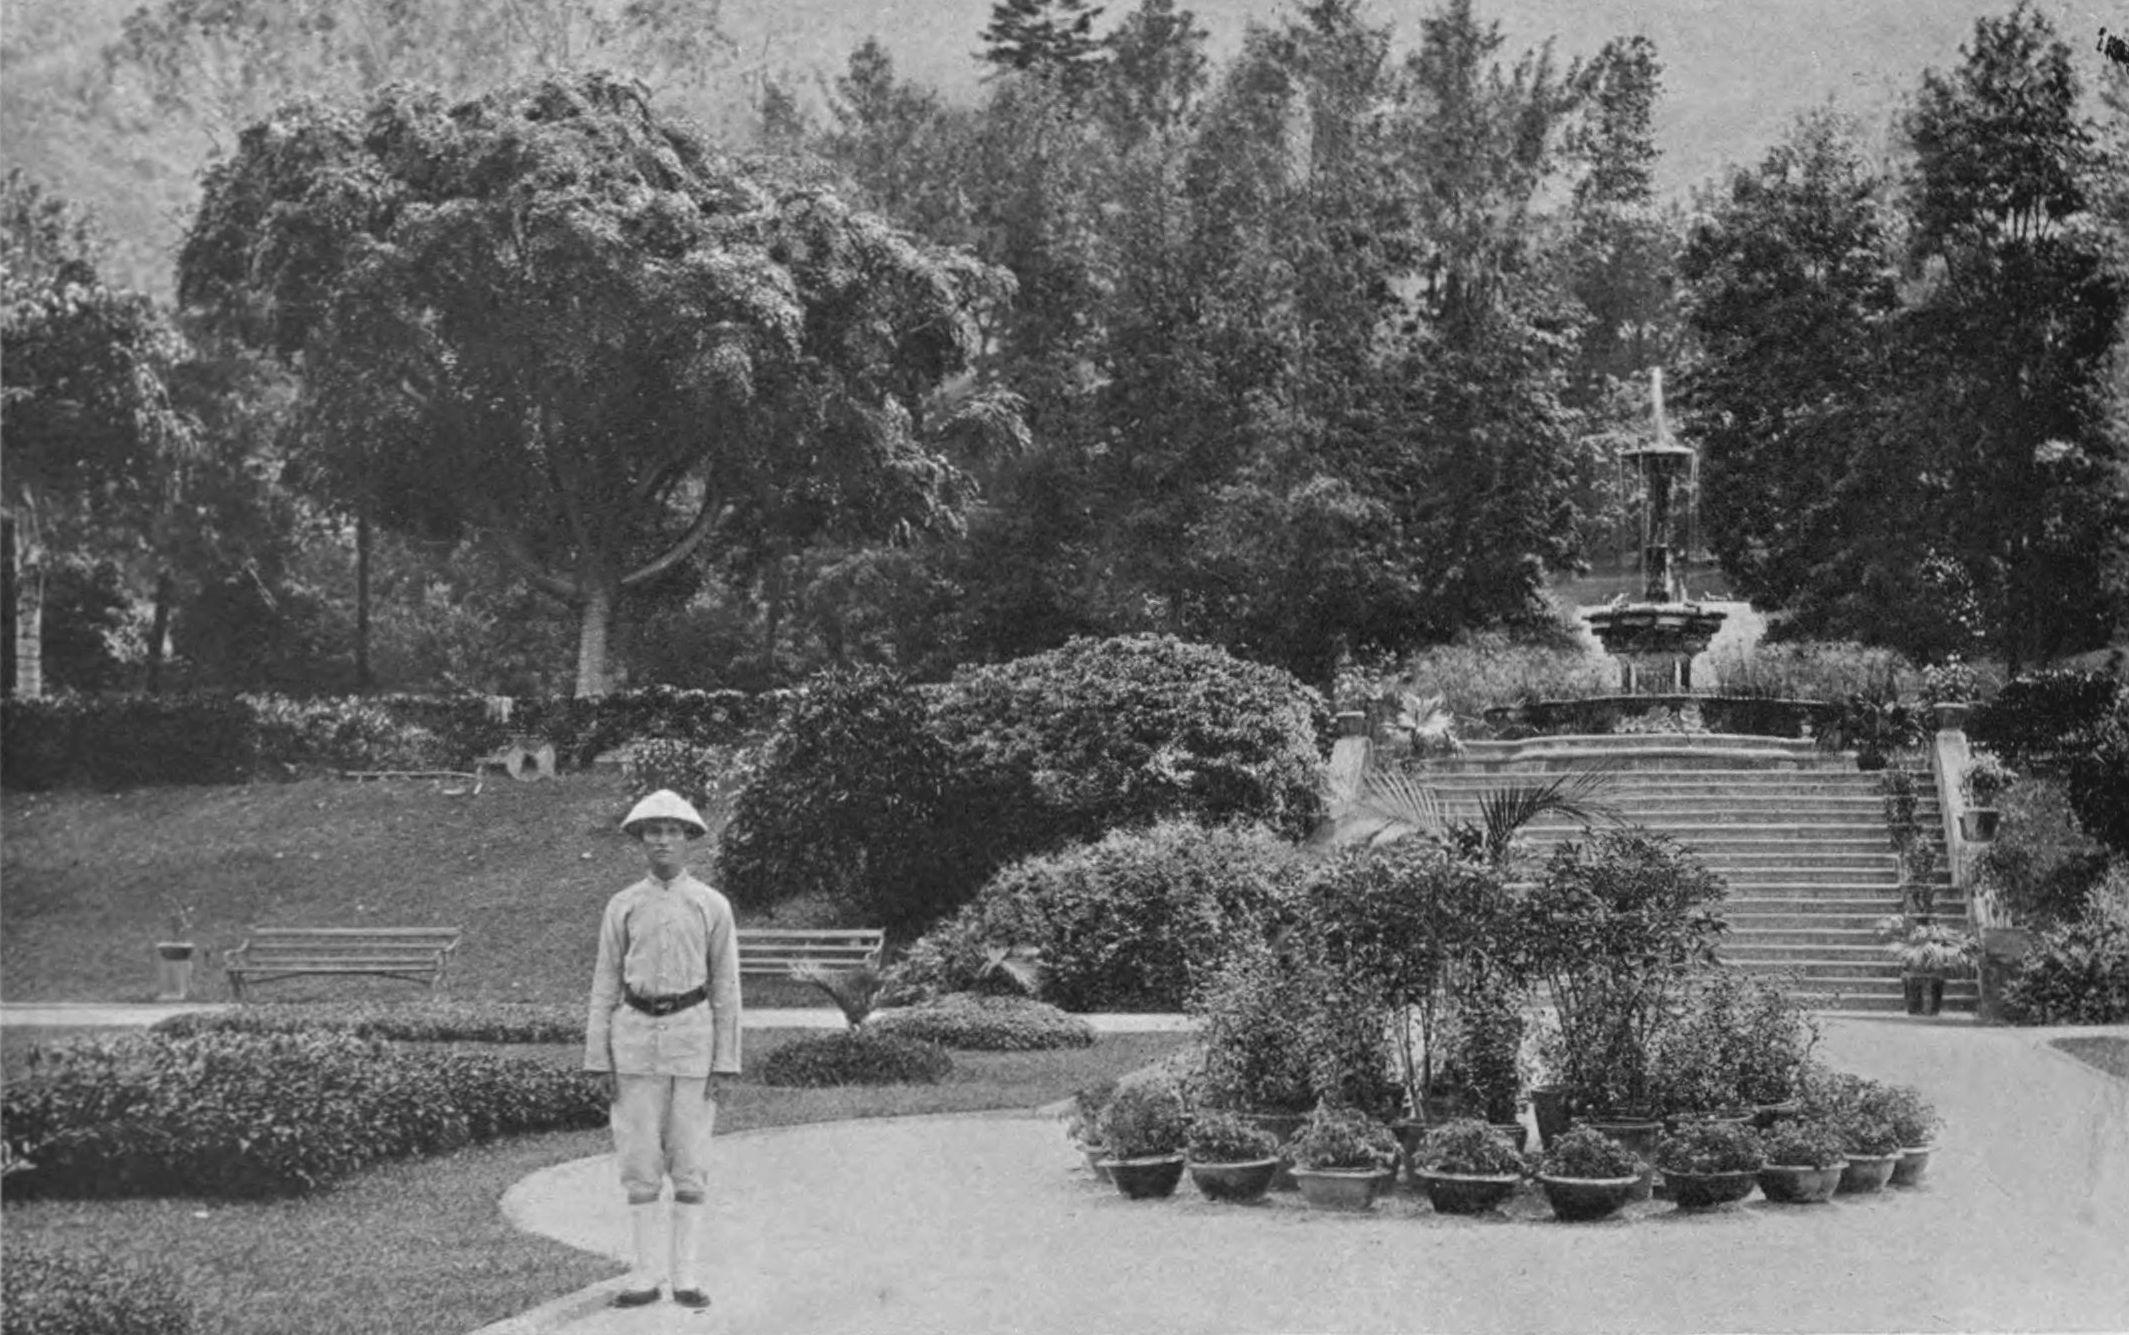 Tcitp d144 the public gardens of hong kong.jpg